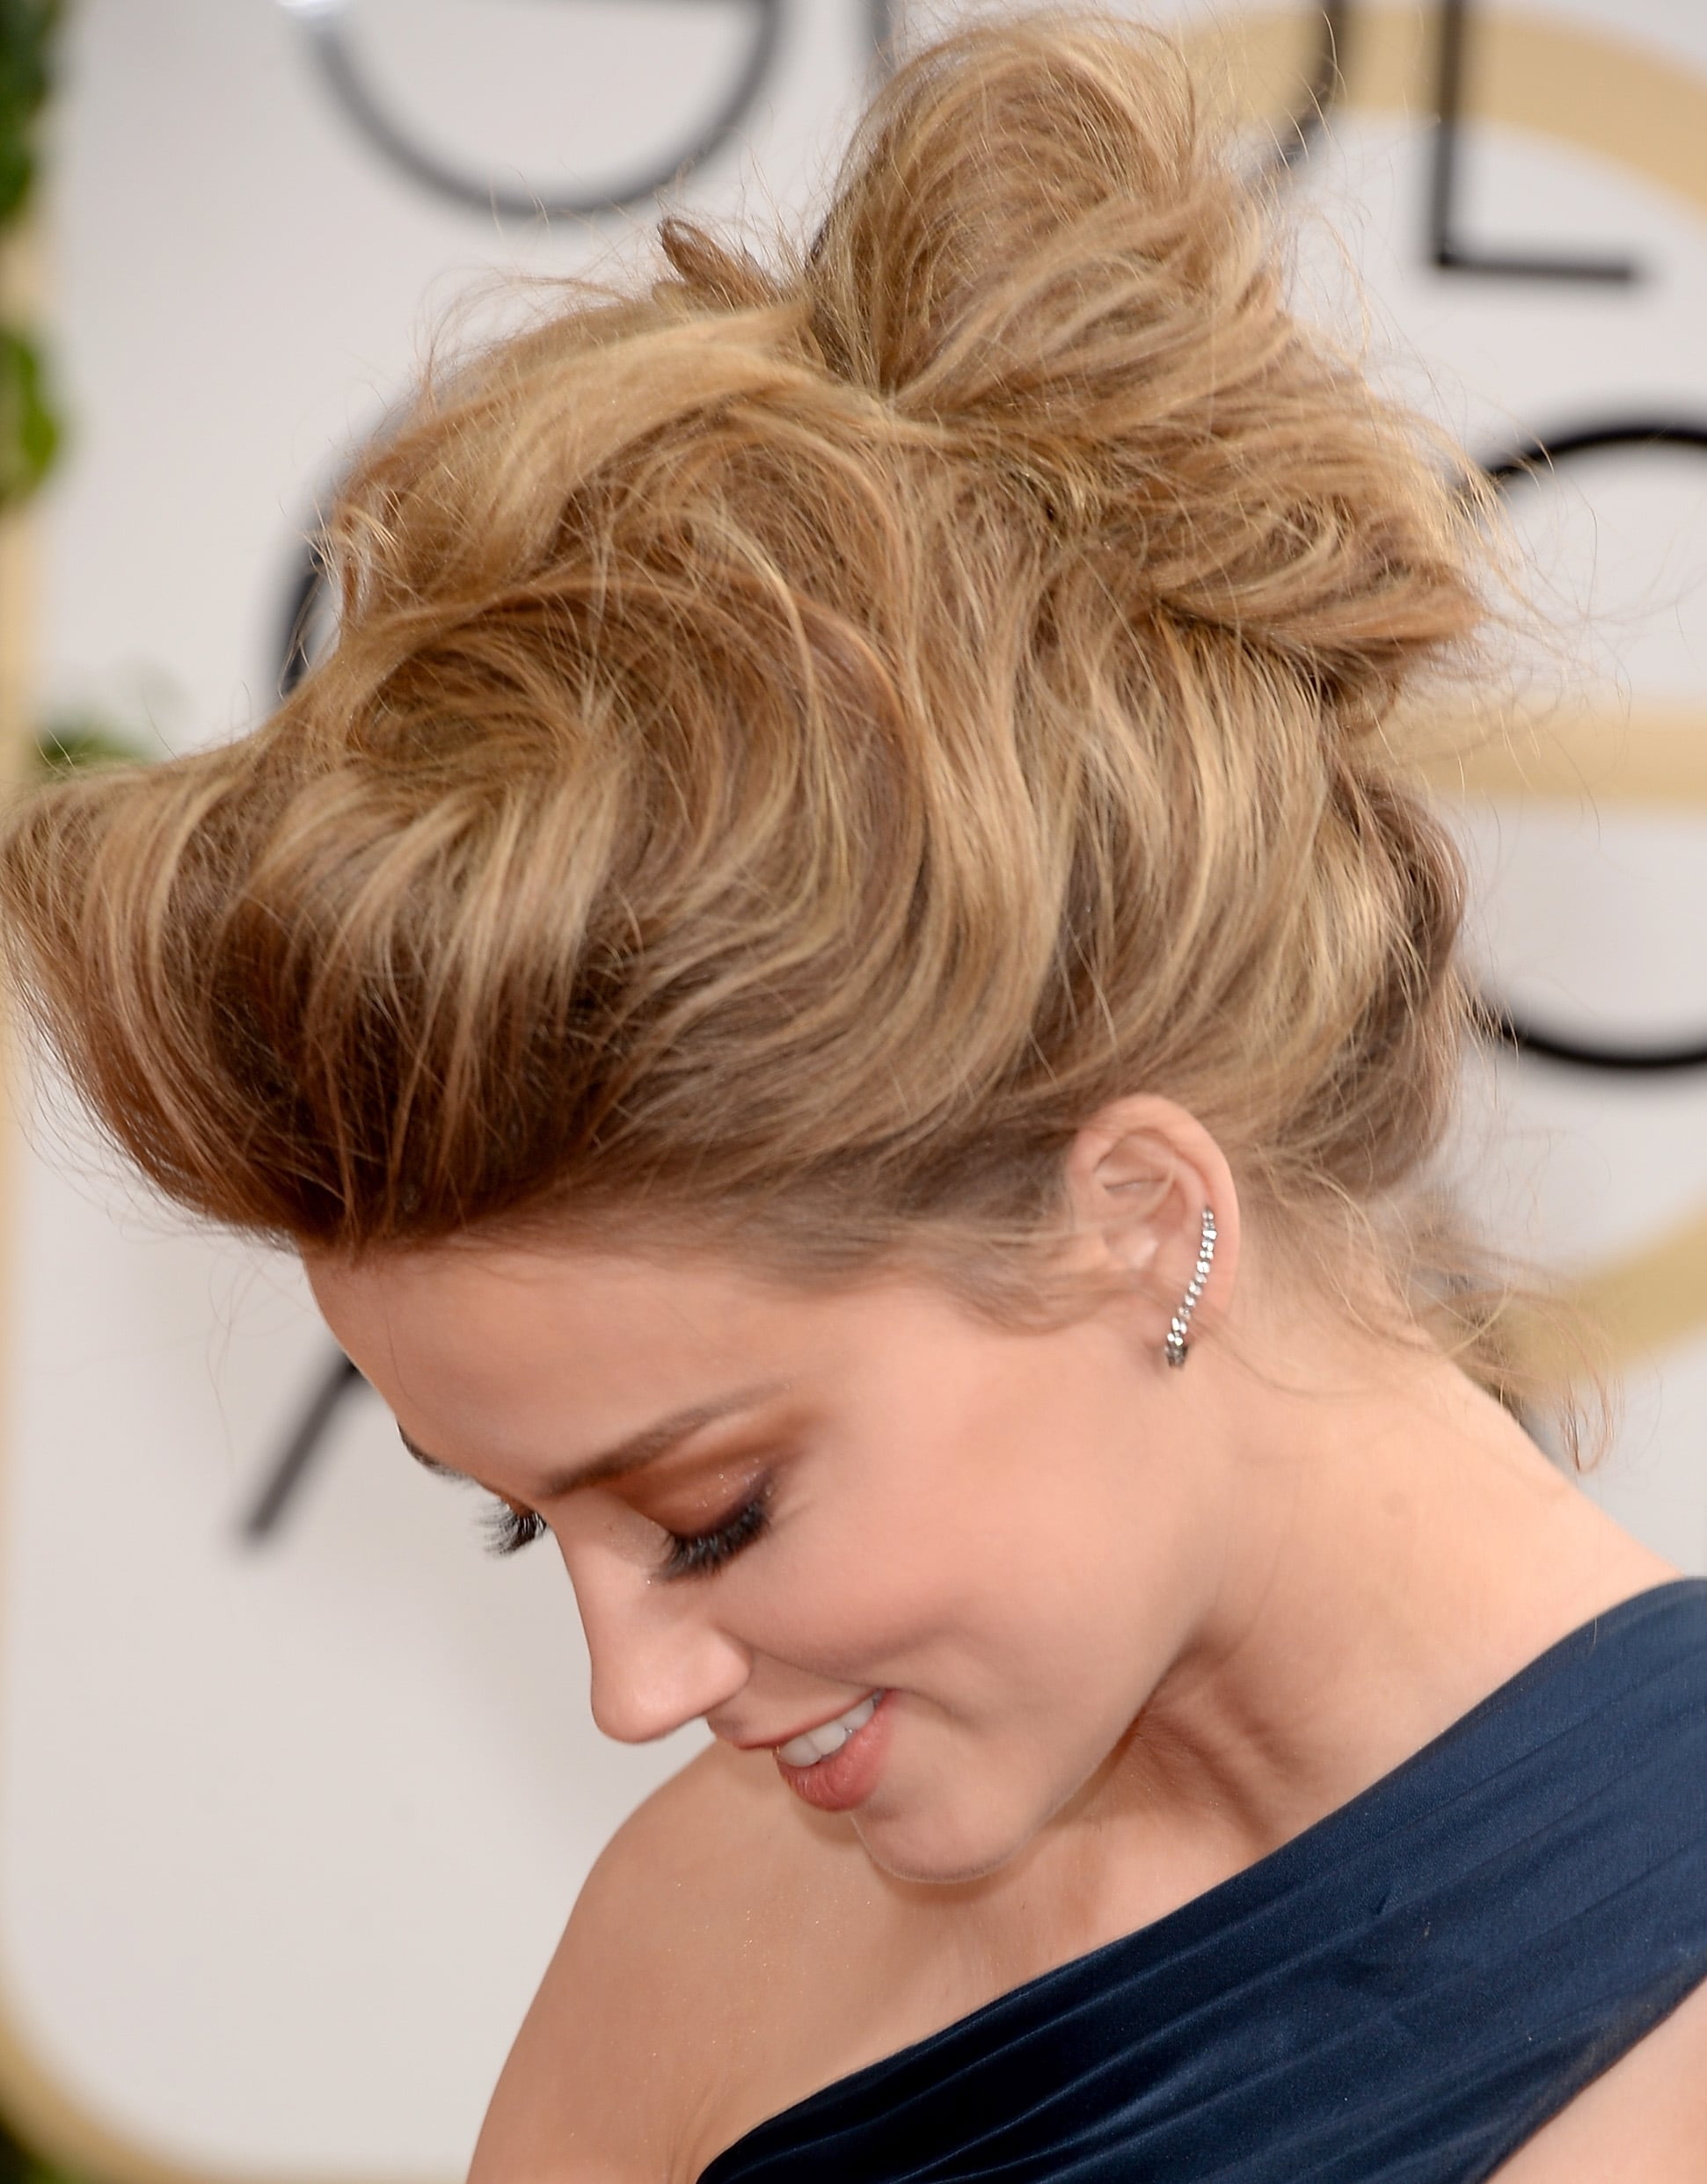 A side view of Amber's perfectly tousled 'do.